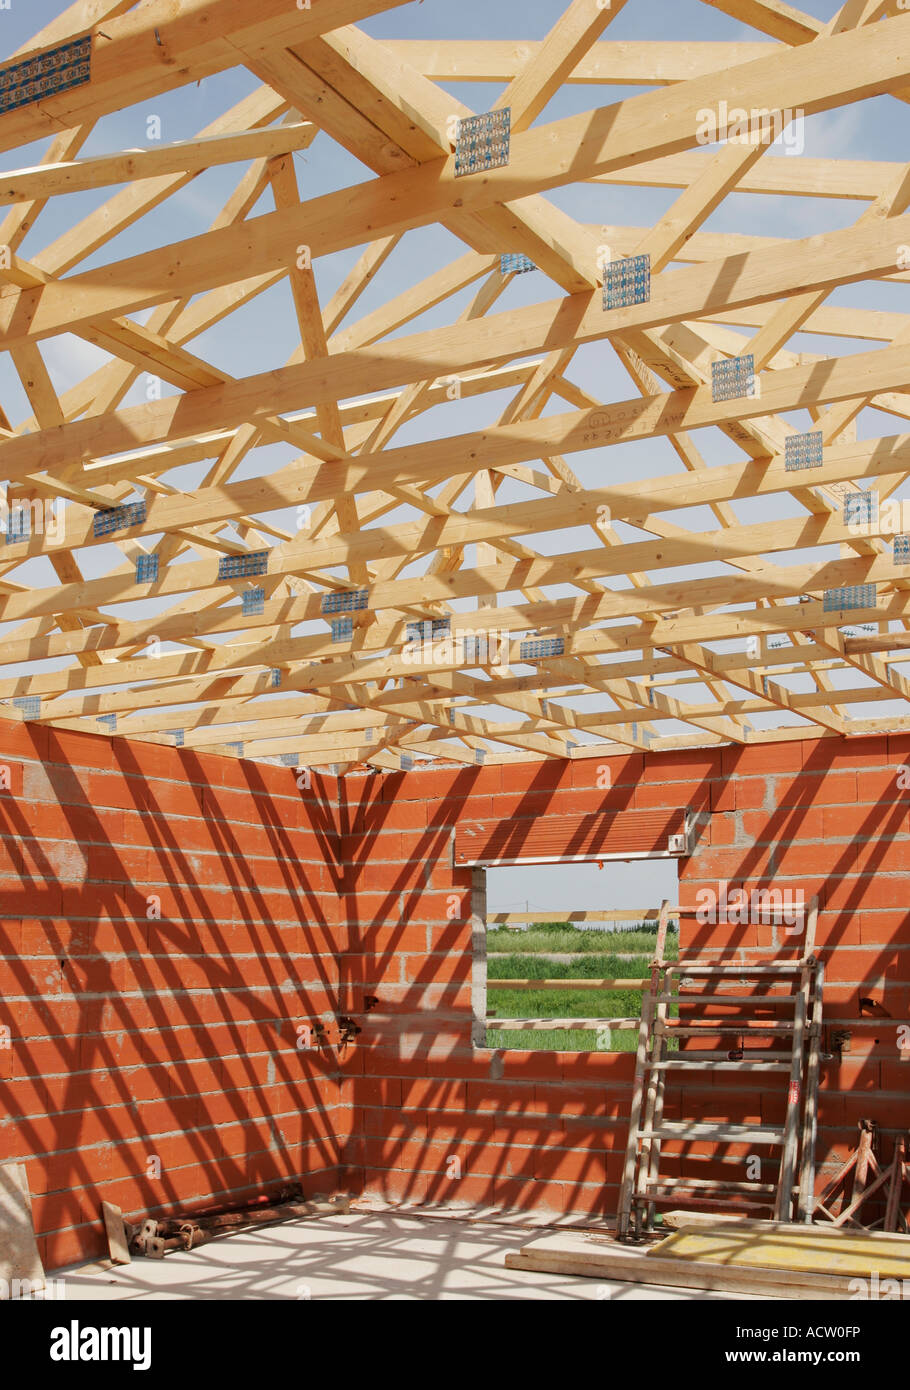 wooden a frame roof truss construction on a small house stock stock photo wooden a frame roof truss construction on a small house